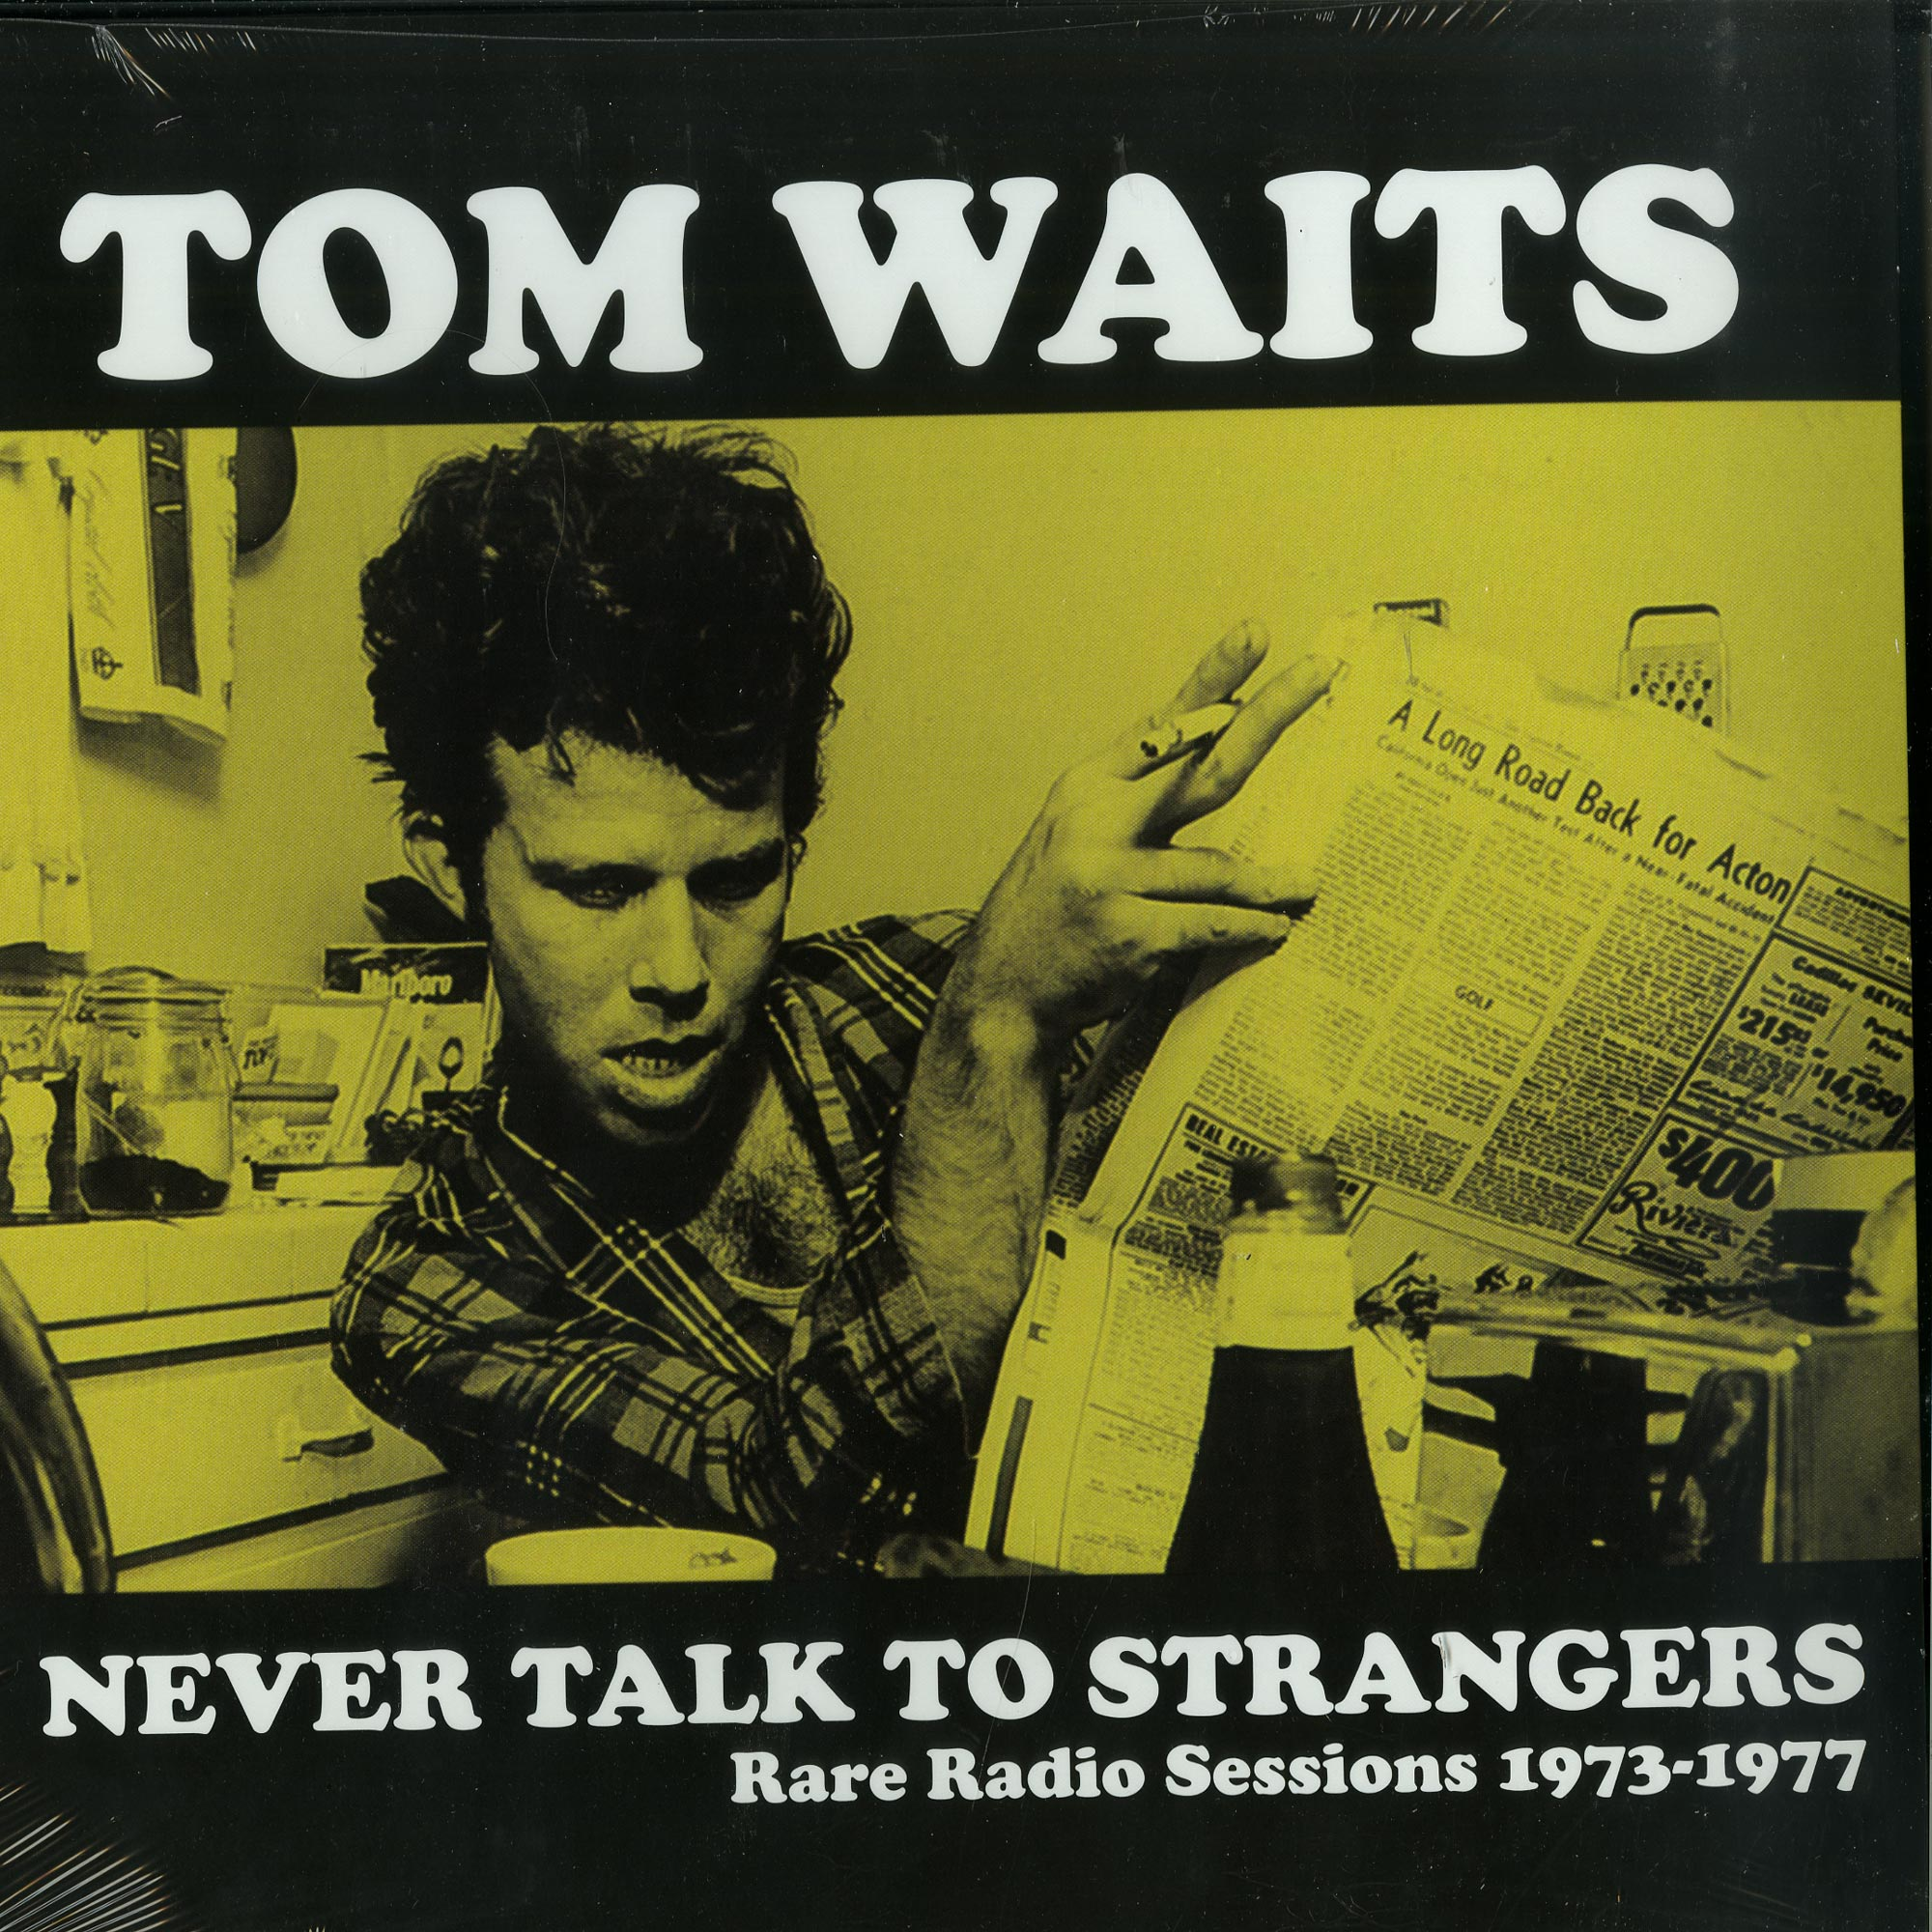 Tom Waits - NEVER TALK TO STRANGERS